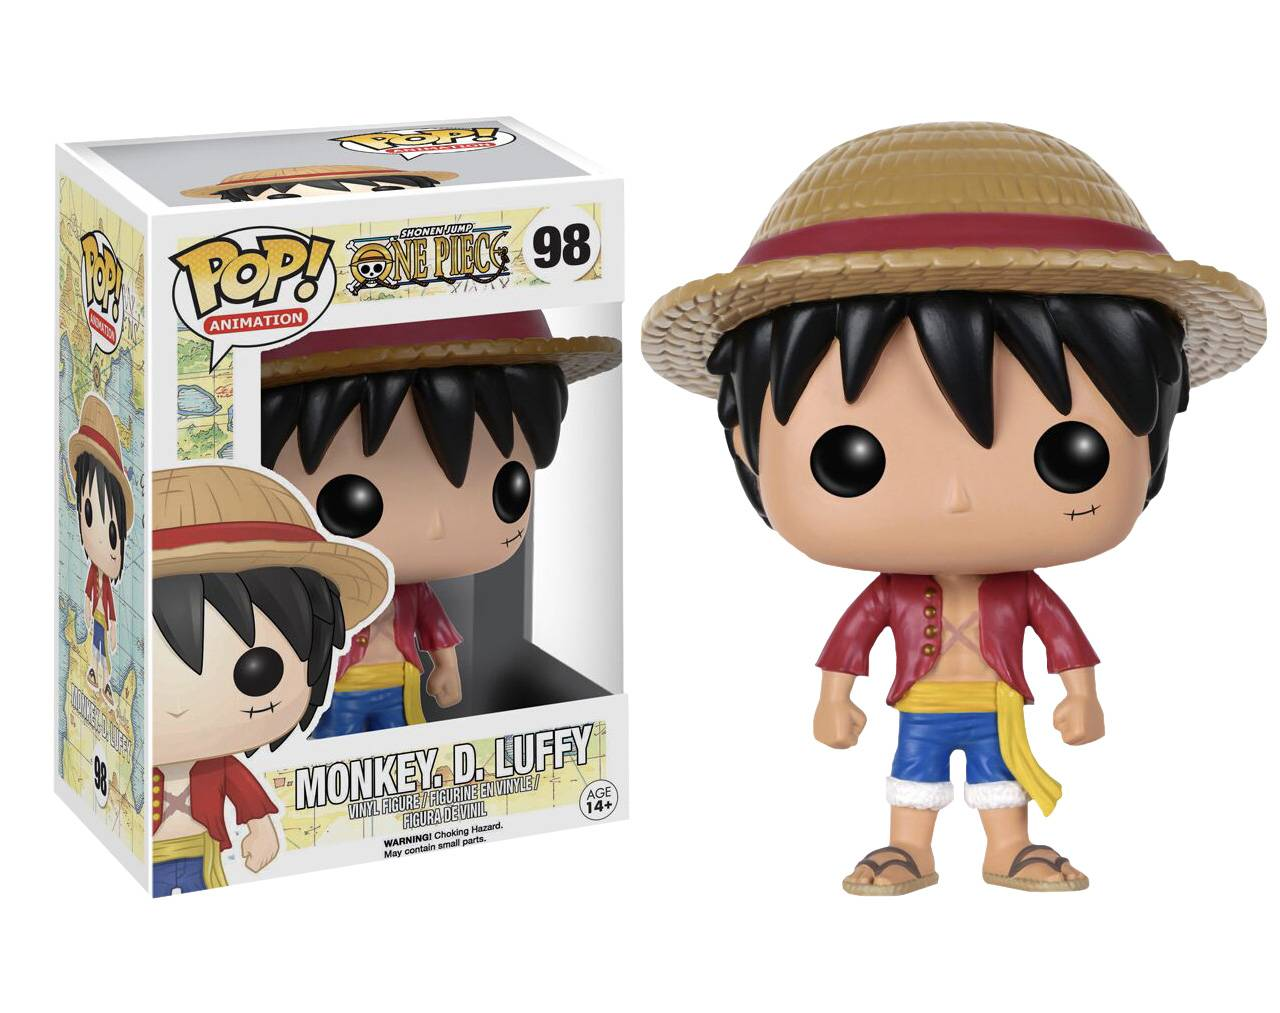 Monkey D. Luffy Pop! Vinyl